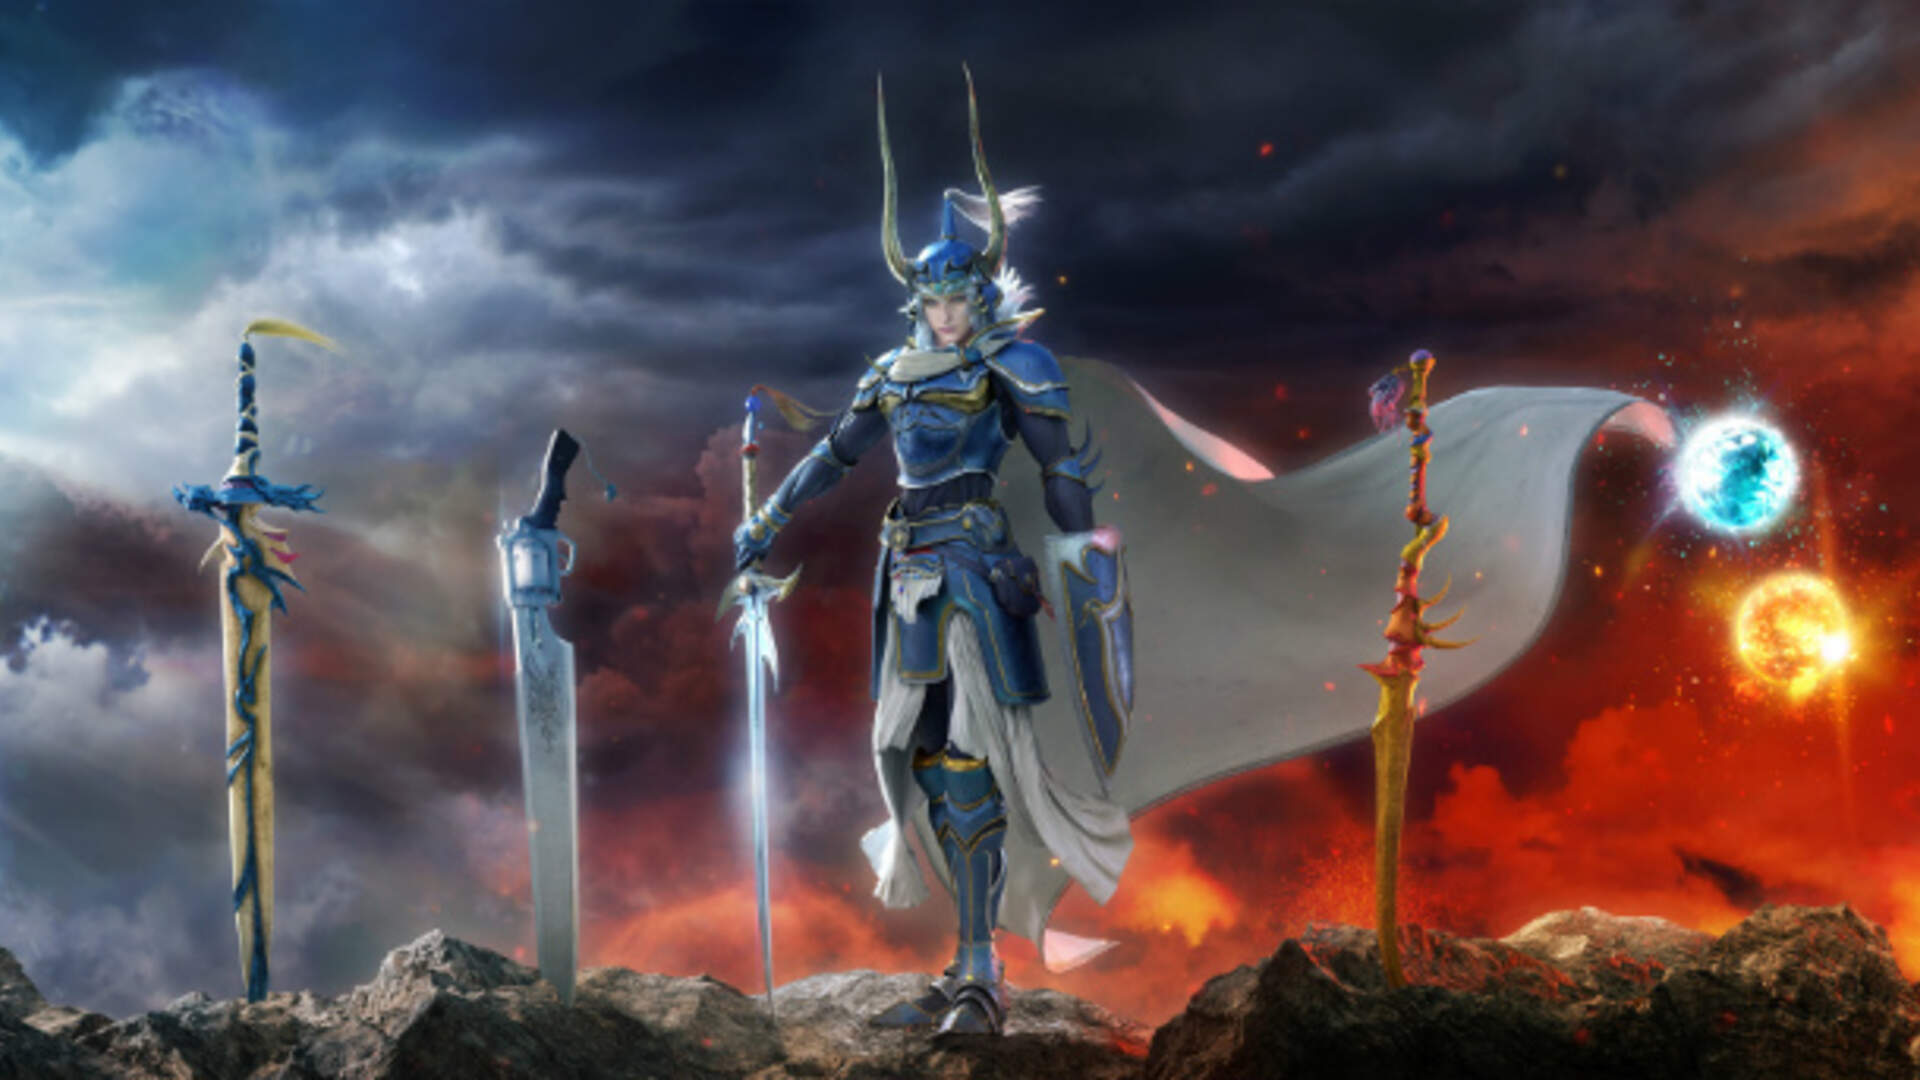 Dissidia Final Fantasy Arcade Revealed For 2018 PS4 Release